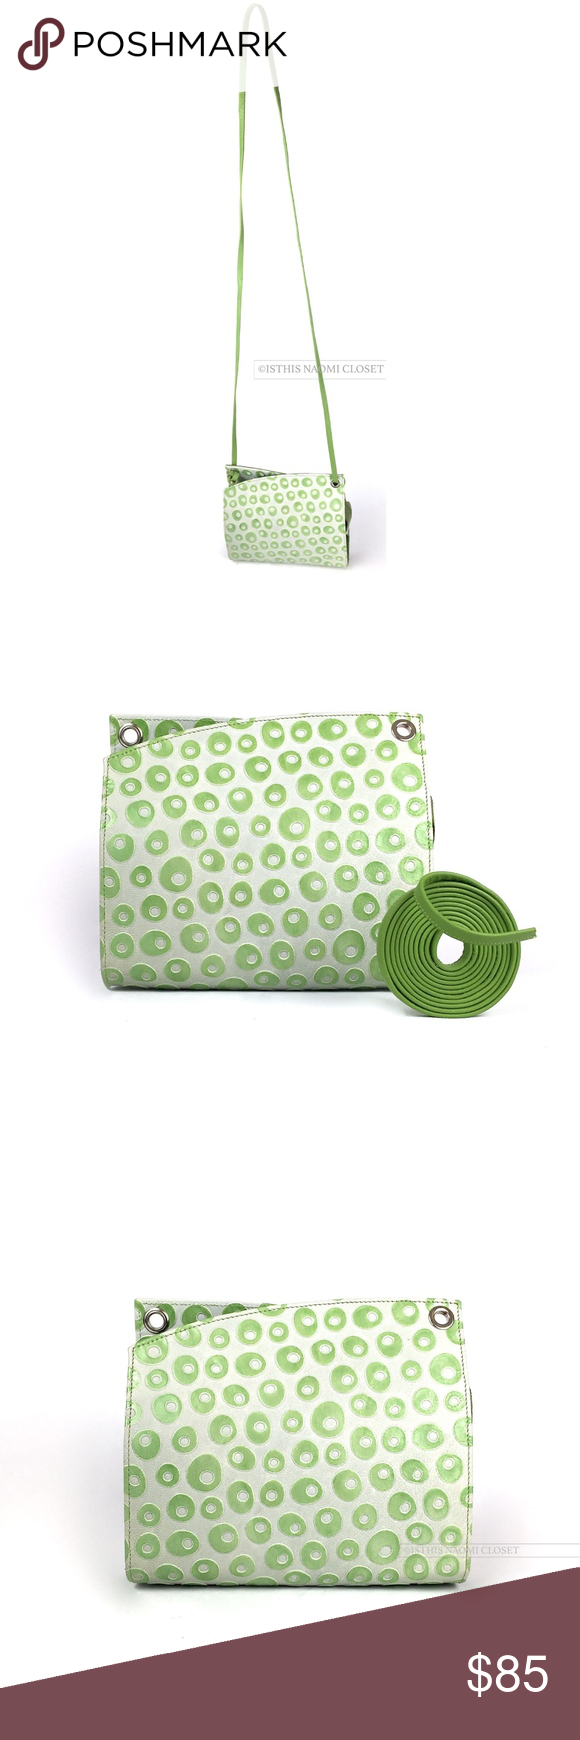 """HESTER VAN EEGHEN AmsterdamOlive Small Clutch 308. HESTER VAN EEGHEN Amsterdam Olive Green Grey Small Clutch Cross-body Purse.  Oblique designed, grey toned/ olive green circles, spaghetti  cross-body strap, silver hardware, pink inline, inlined zipped pouch. Length-~7.25,"""" Width -~1.75,"""" (With Cross-body Strap) Height-31"""", (Without Strap) Height-~6.52."""" Genlte Use. Barely noticeable (minute) inner lined, outer-shell, strap wear and base seam. Leather Material. Hester Van Eeghen Bags…"""